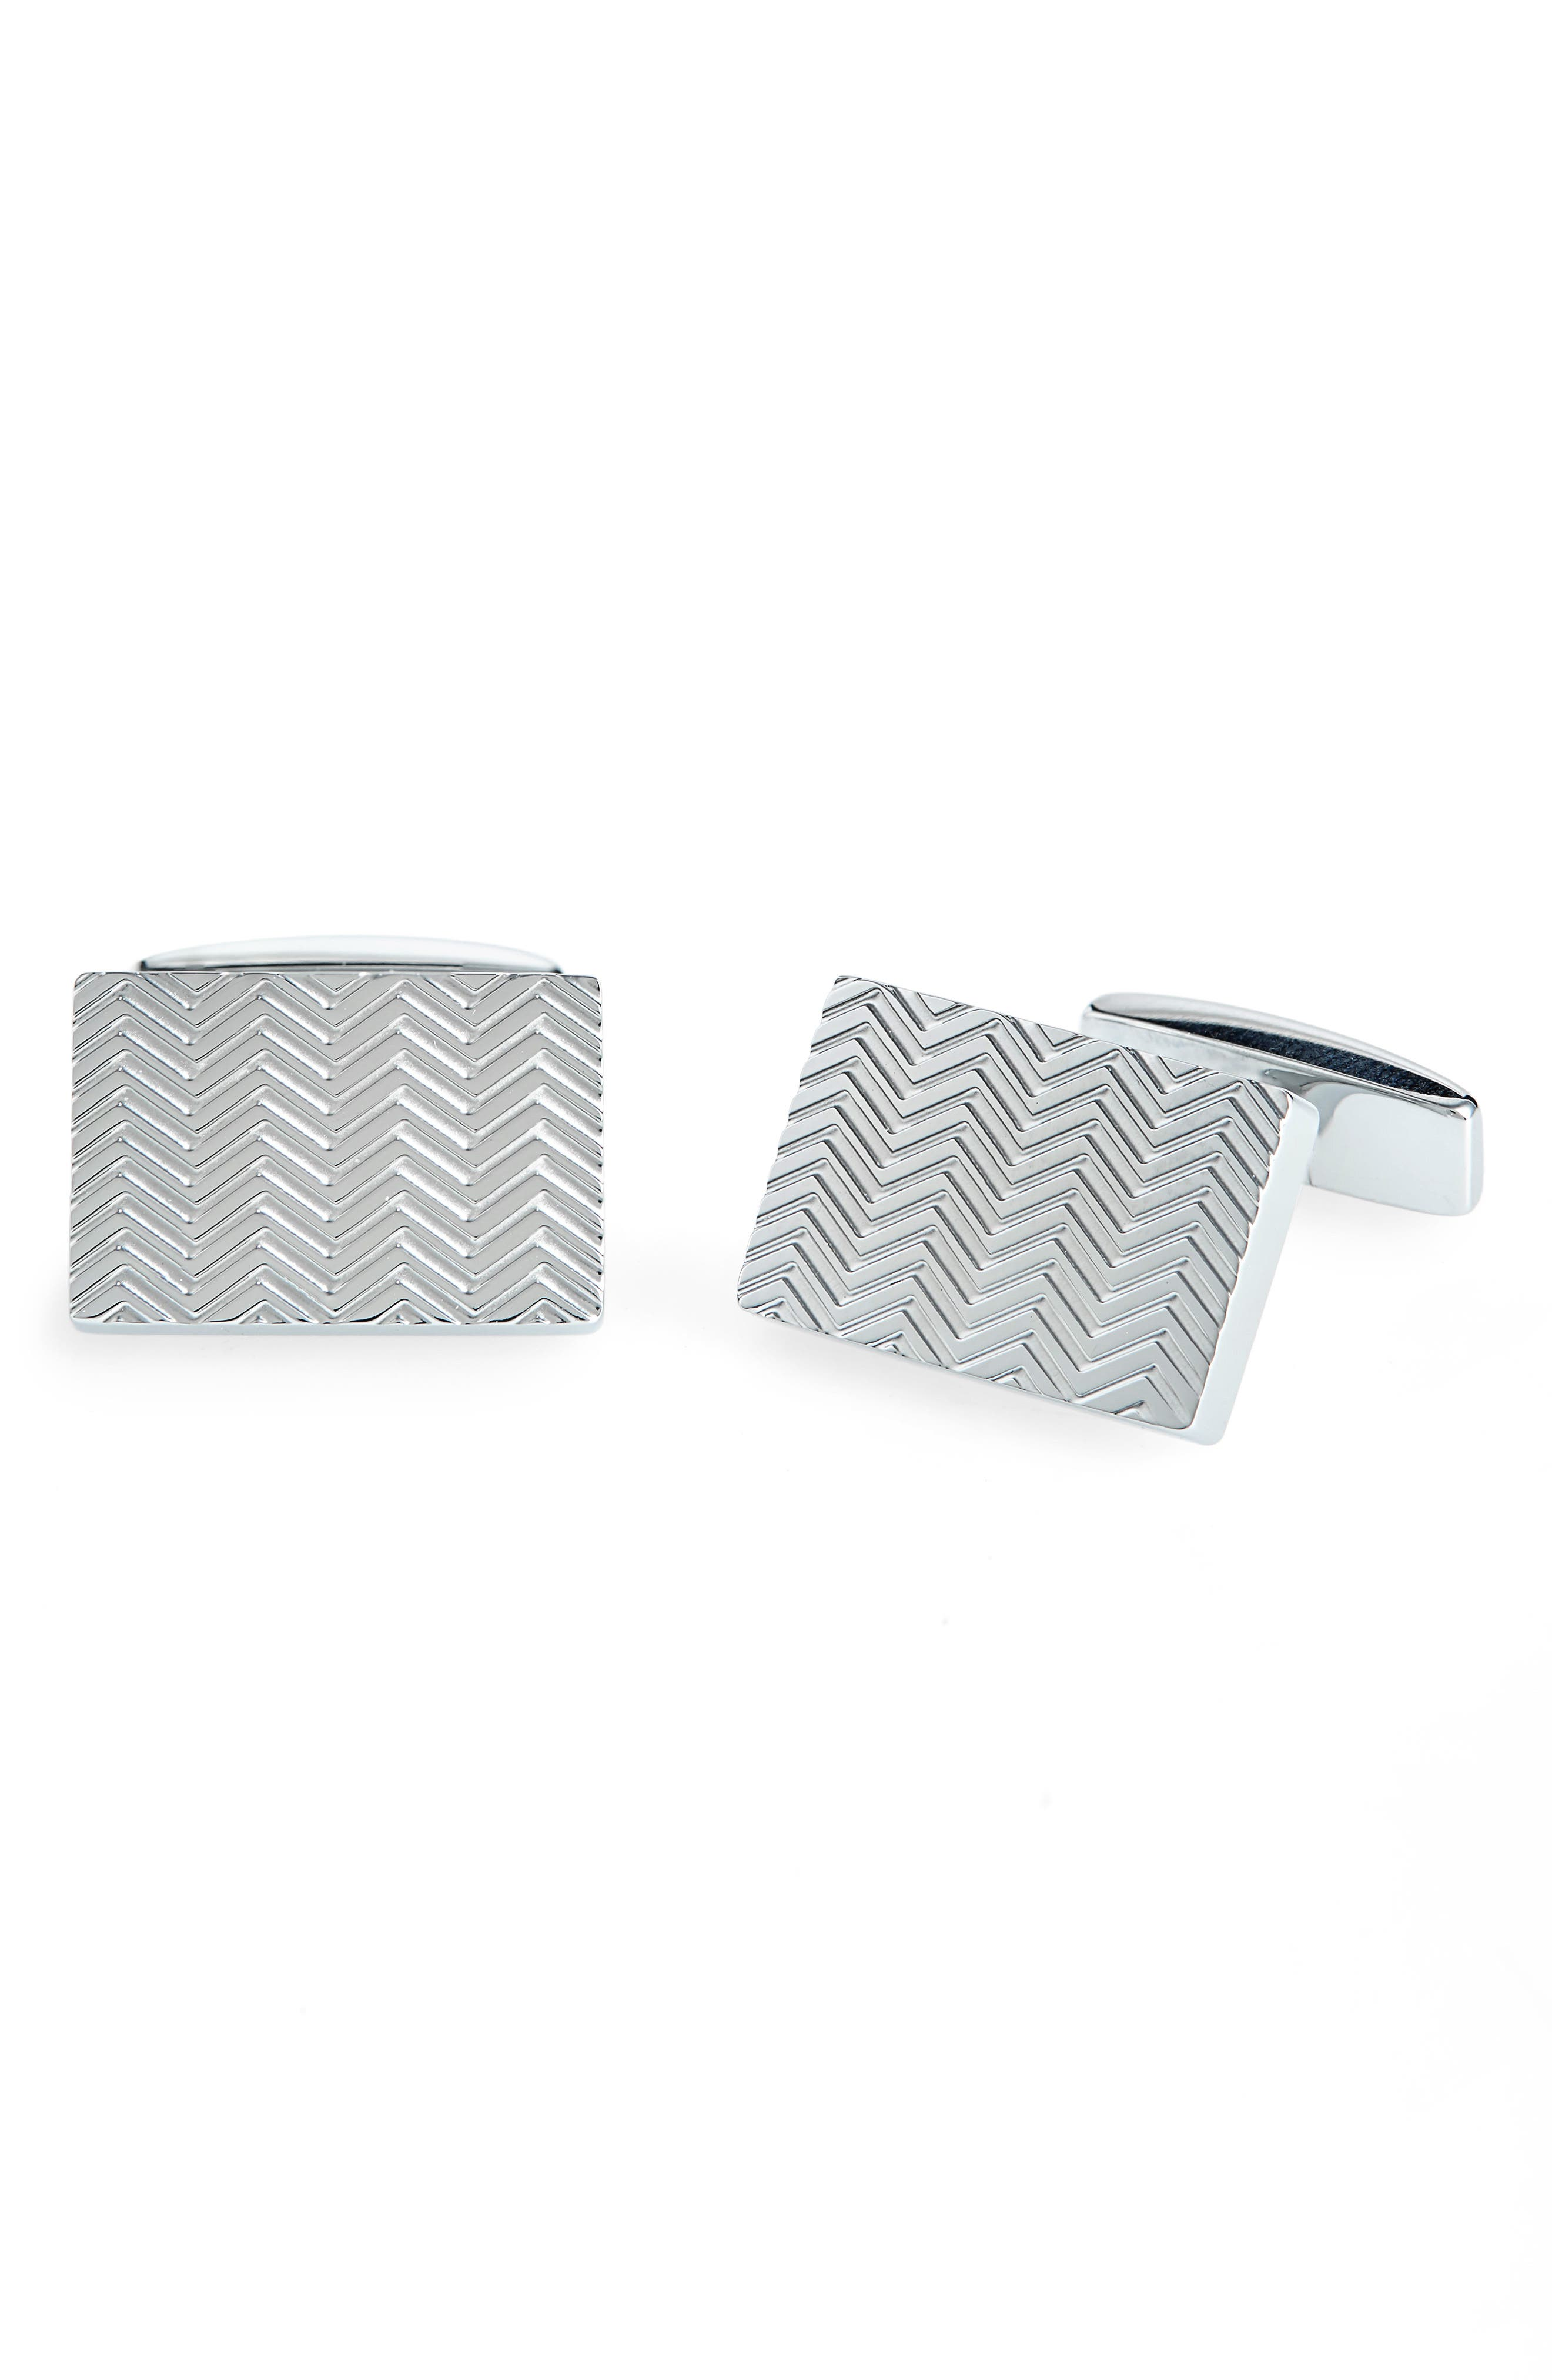 Fede Cuff Links,                             Main thumbnail 1, color,                             SILVER